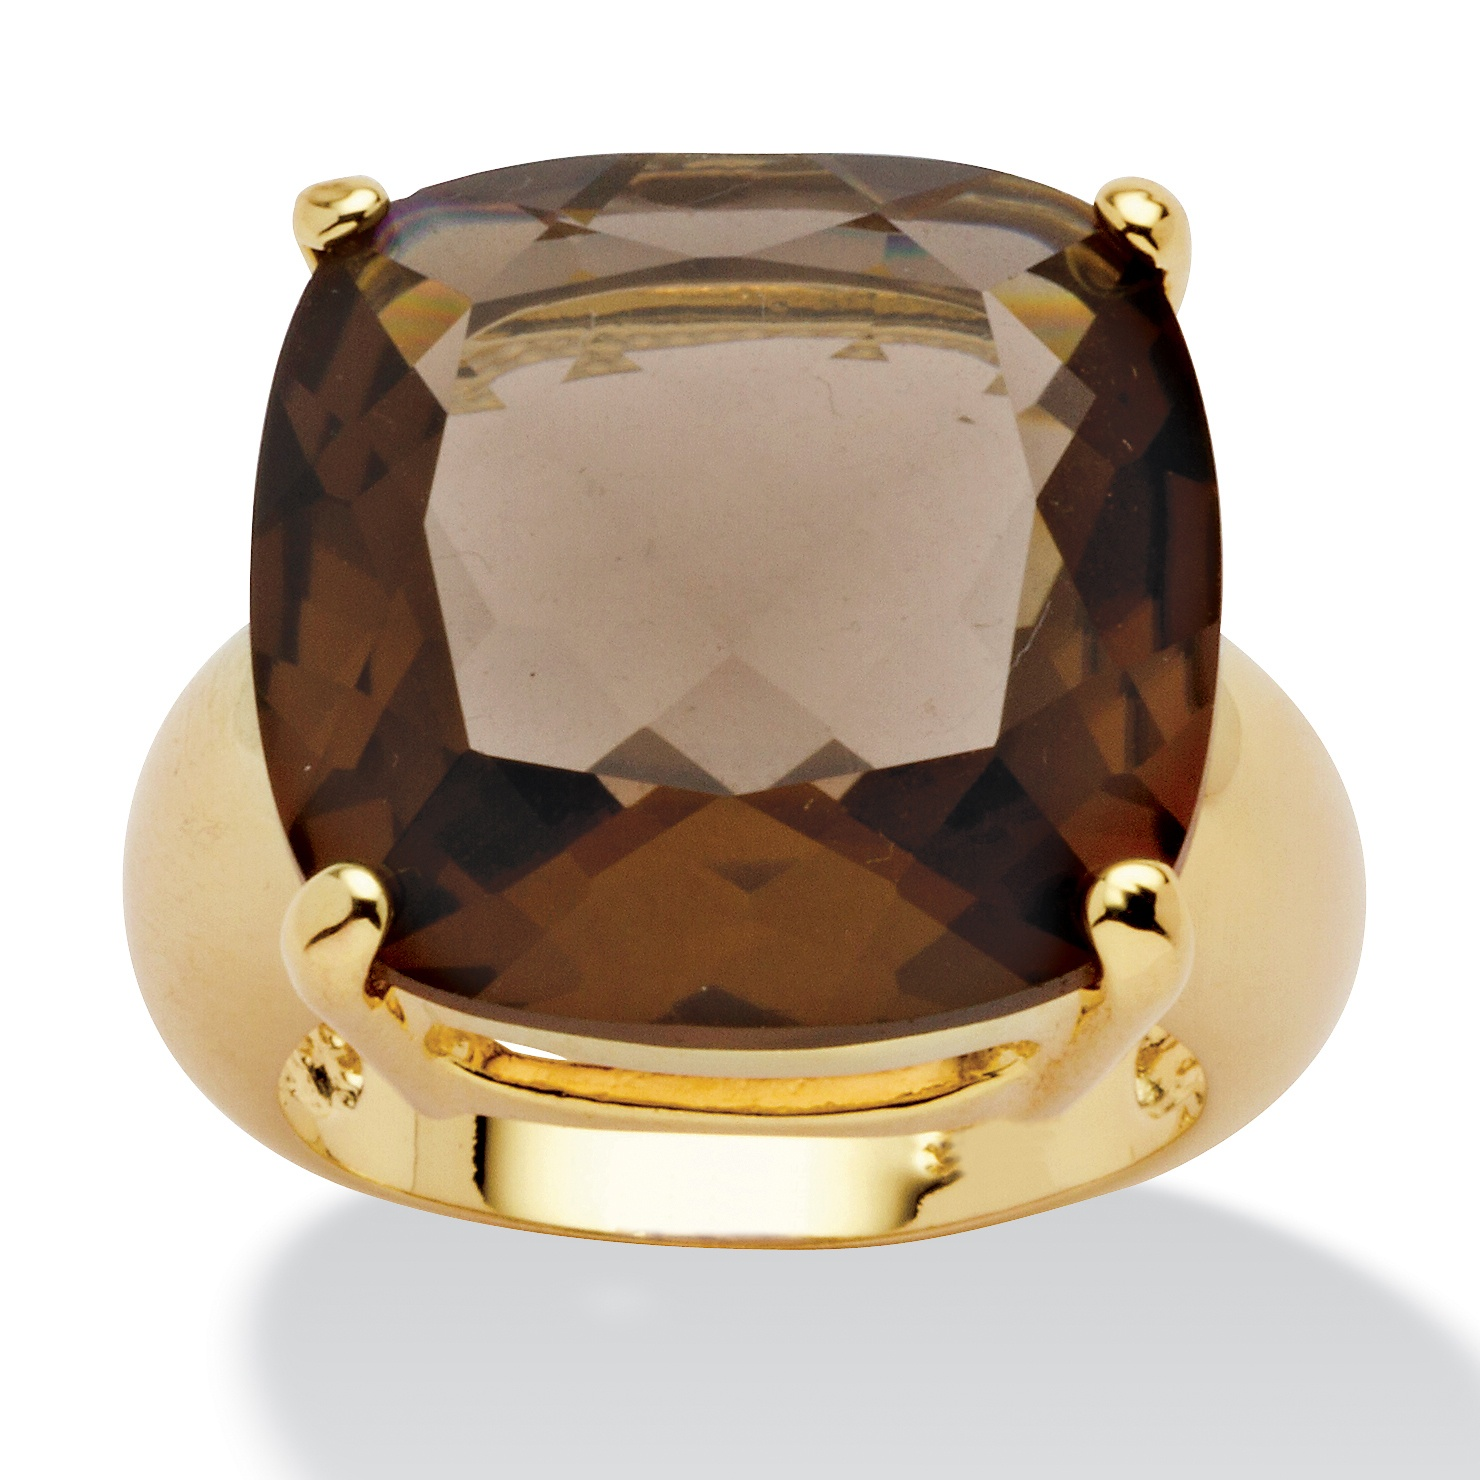 28 TCW Cushion Princess-Cut Genuine Smoky Quartz 14k